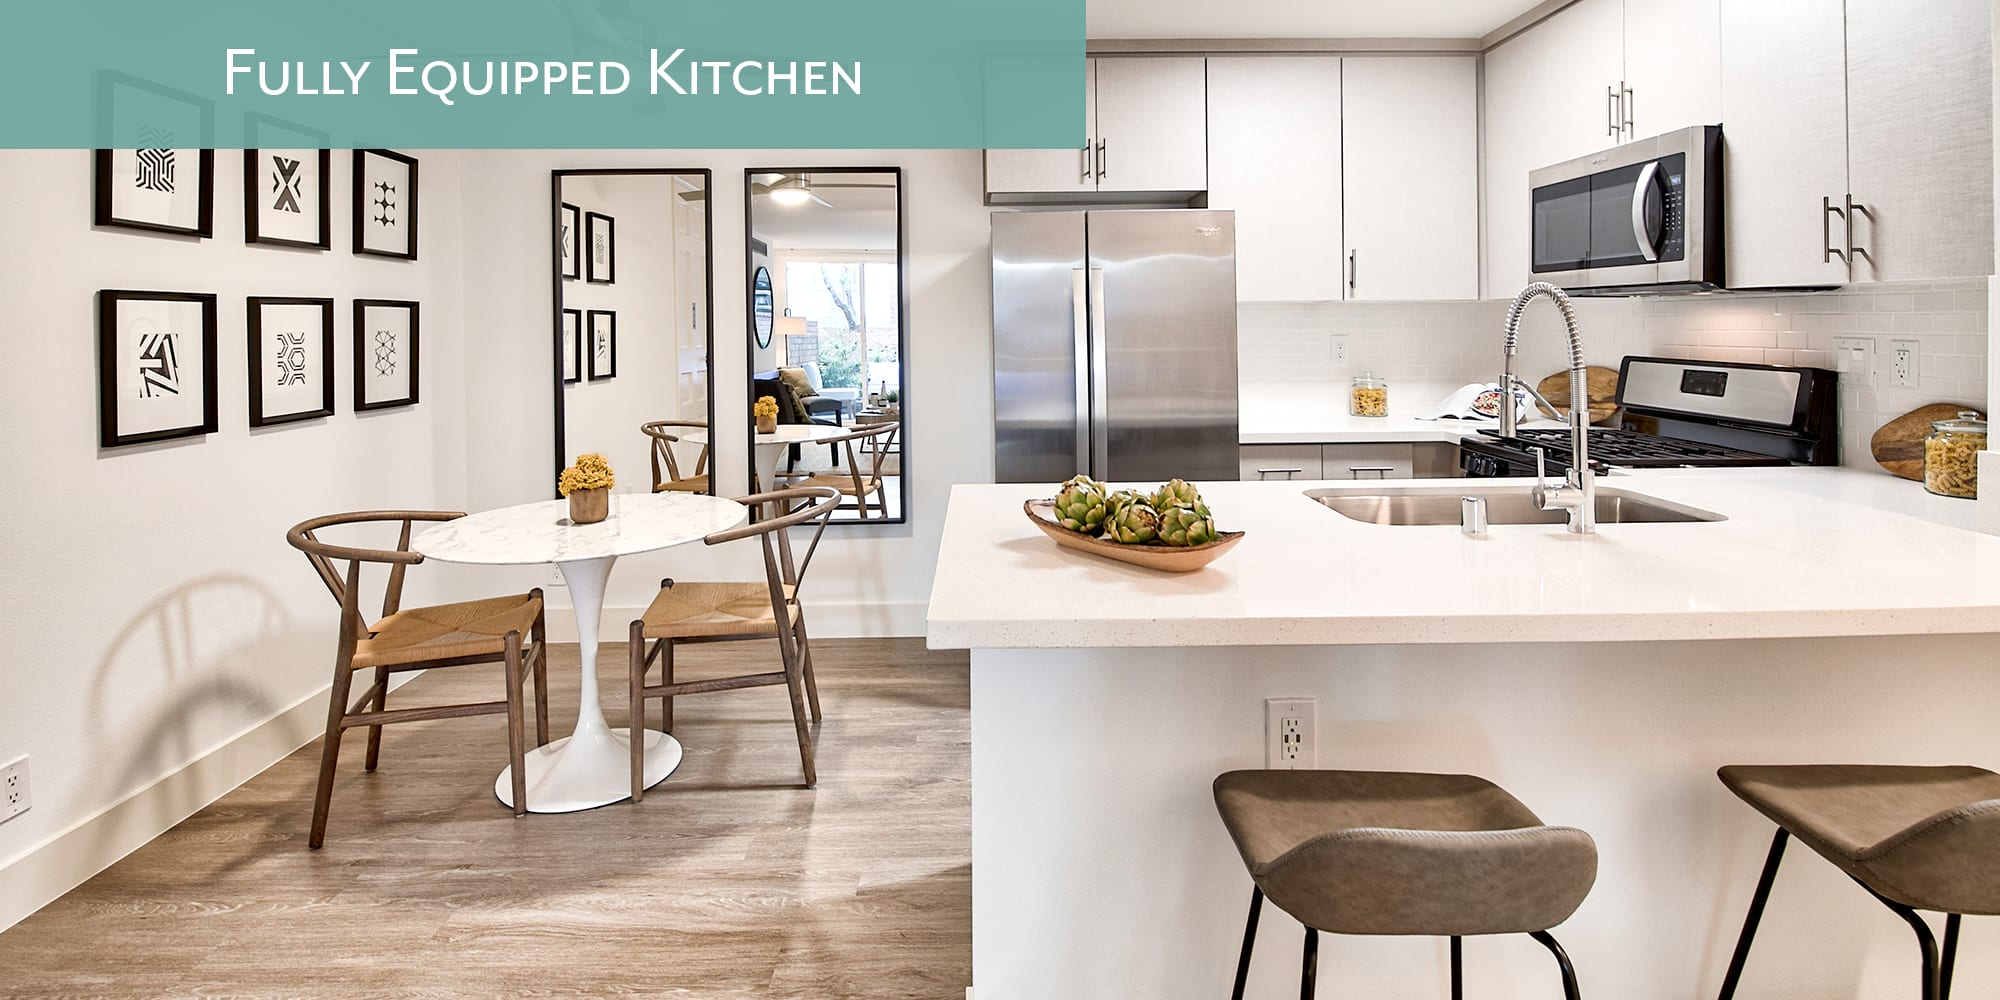 Fully equipped kitchens at The Meadows in Culver City, California